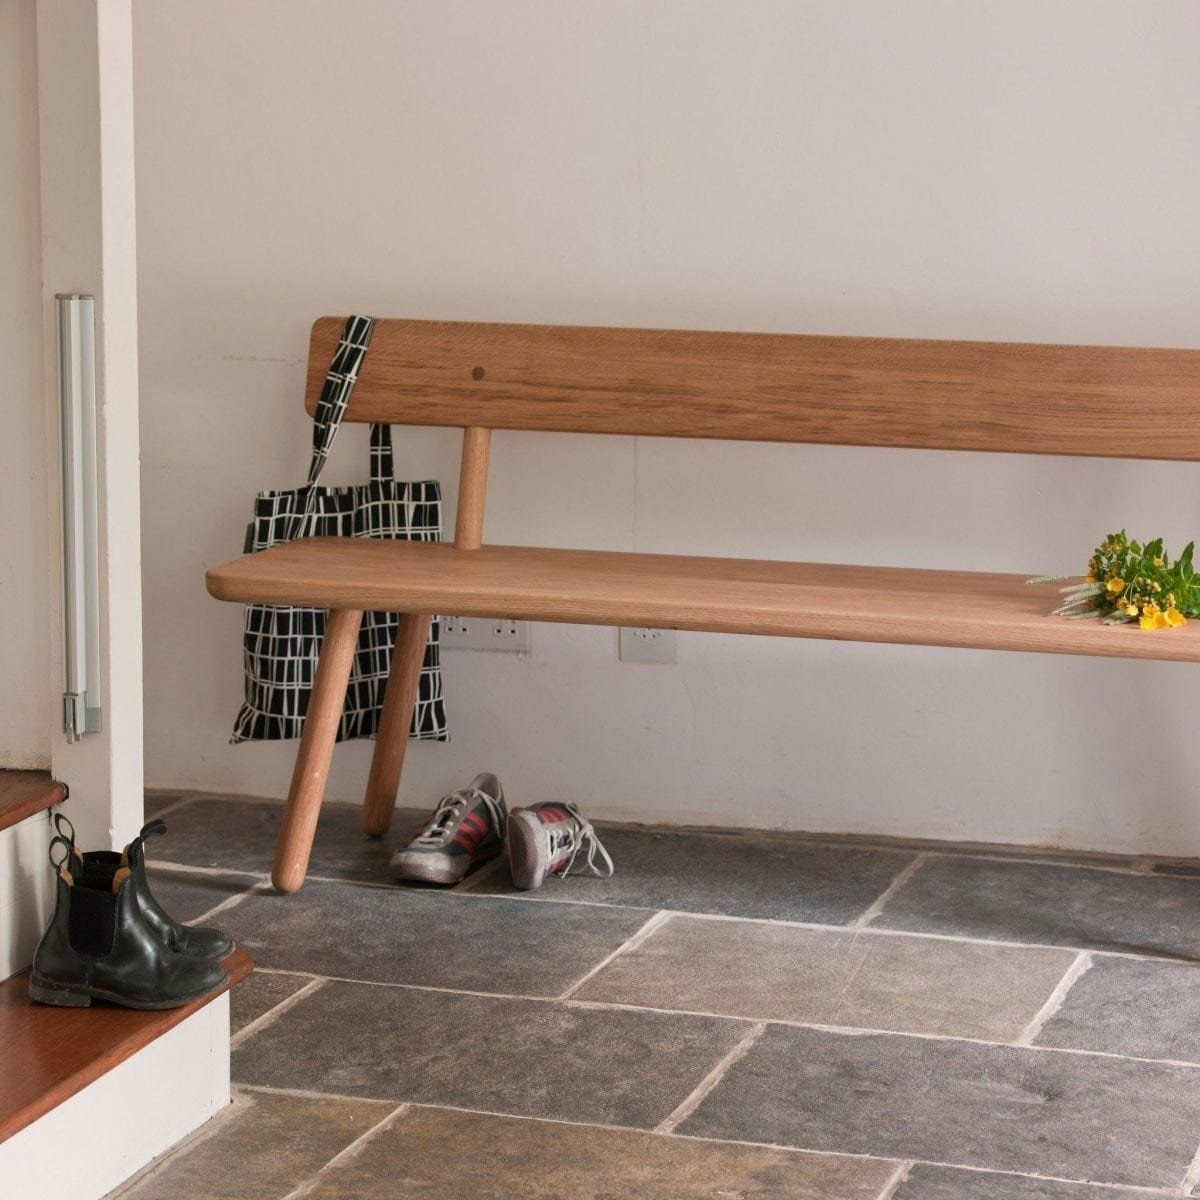 Oak Bench Back One by Another Country in 2020 Diy bench